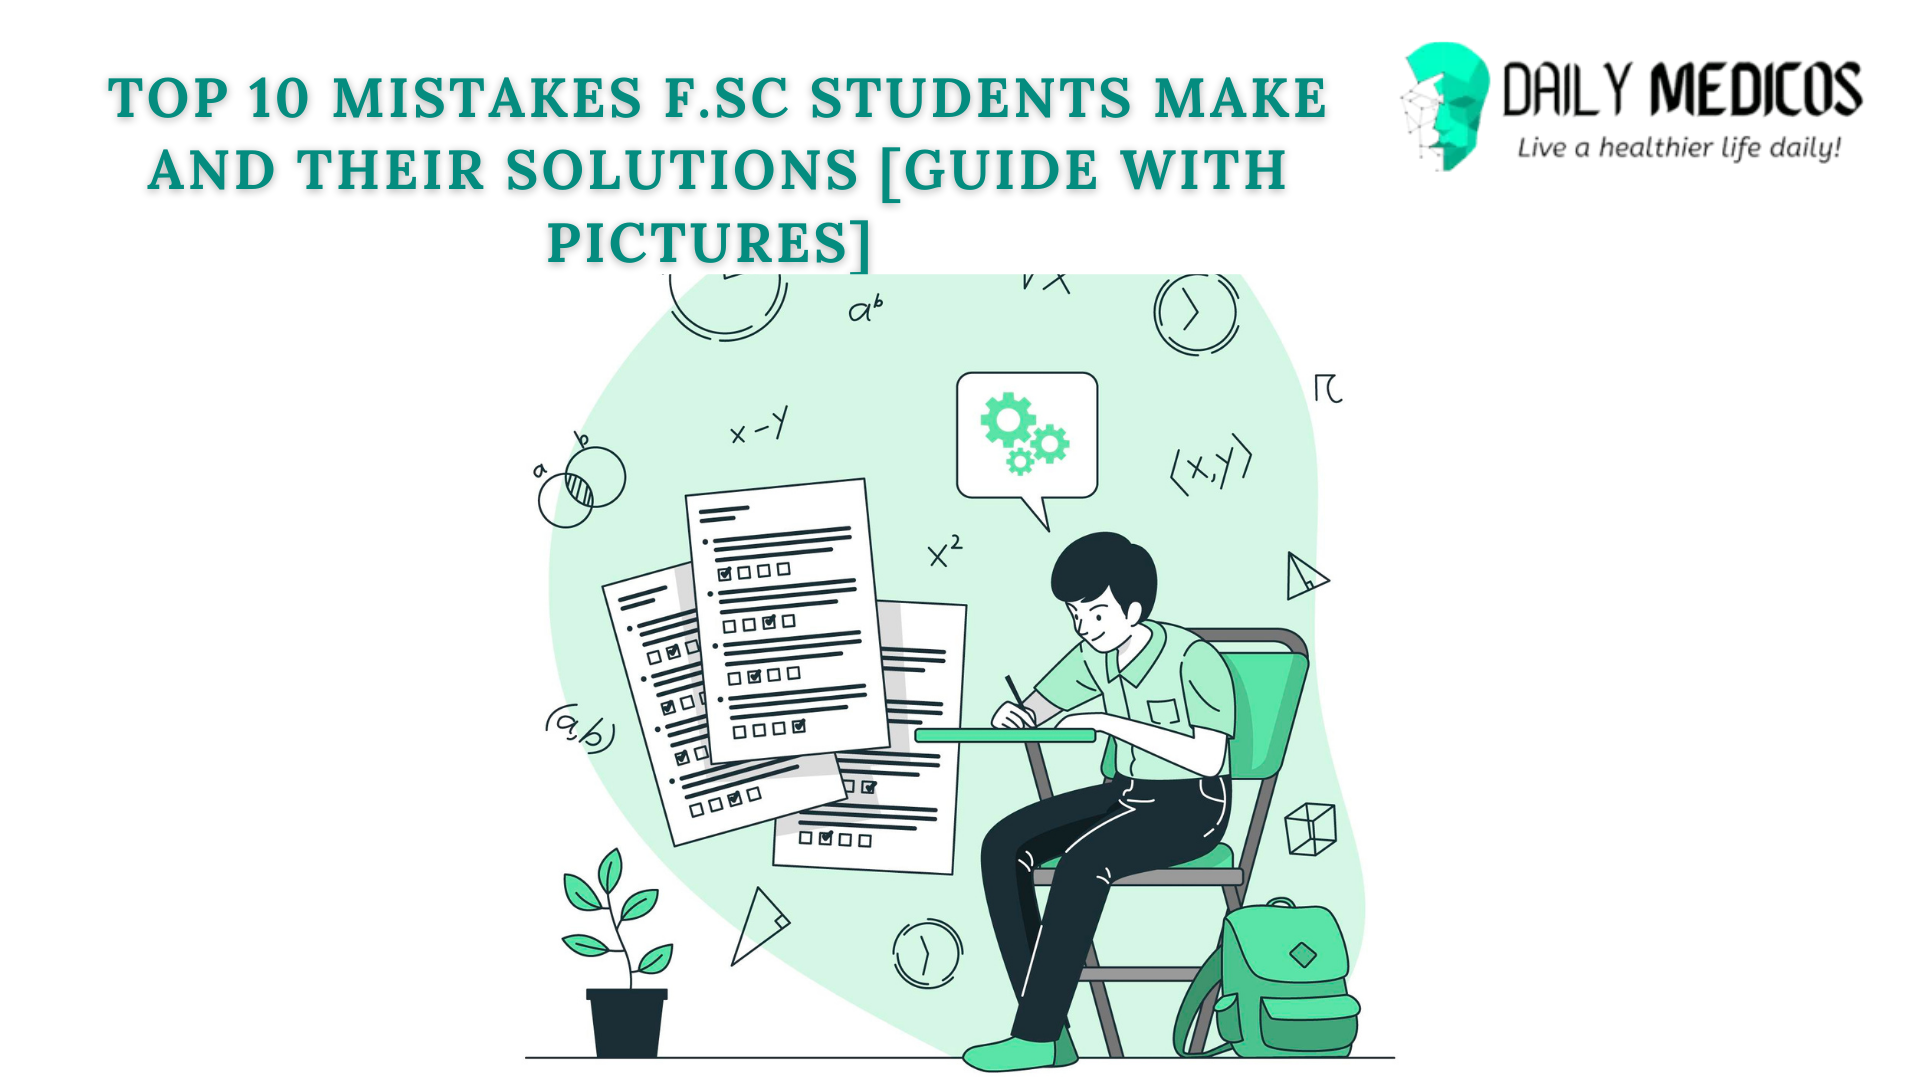 Top 10 Mistakes F.Sc Students Make And Their Solutions [Guide with Pictures] 1 - Daily Medicos